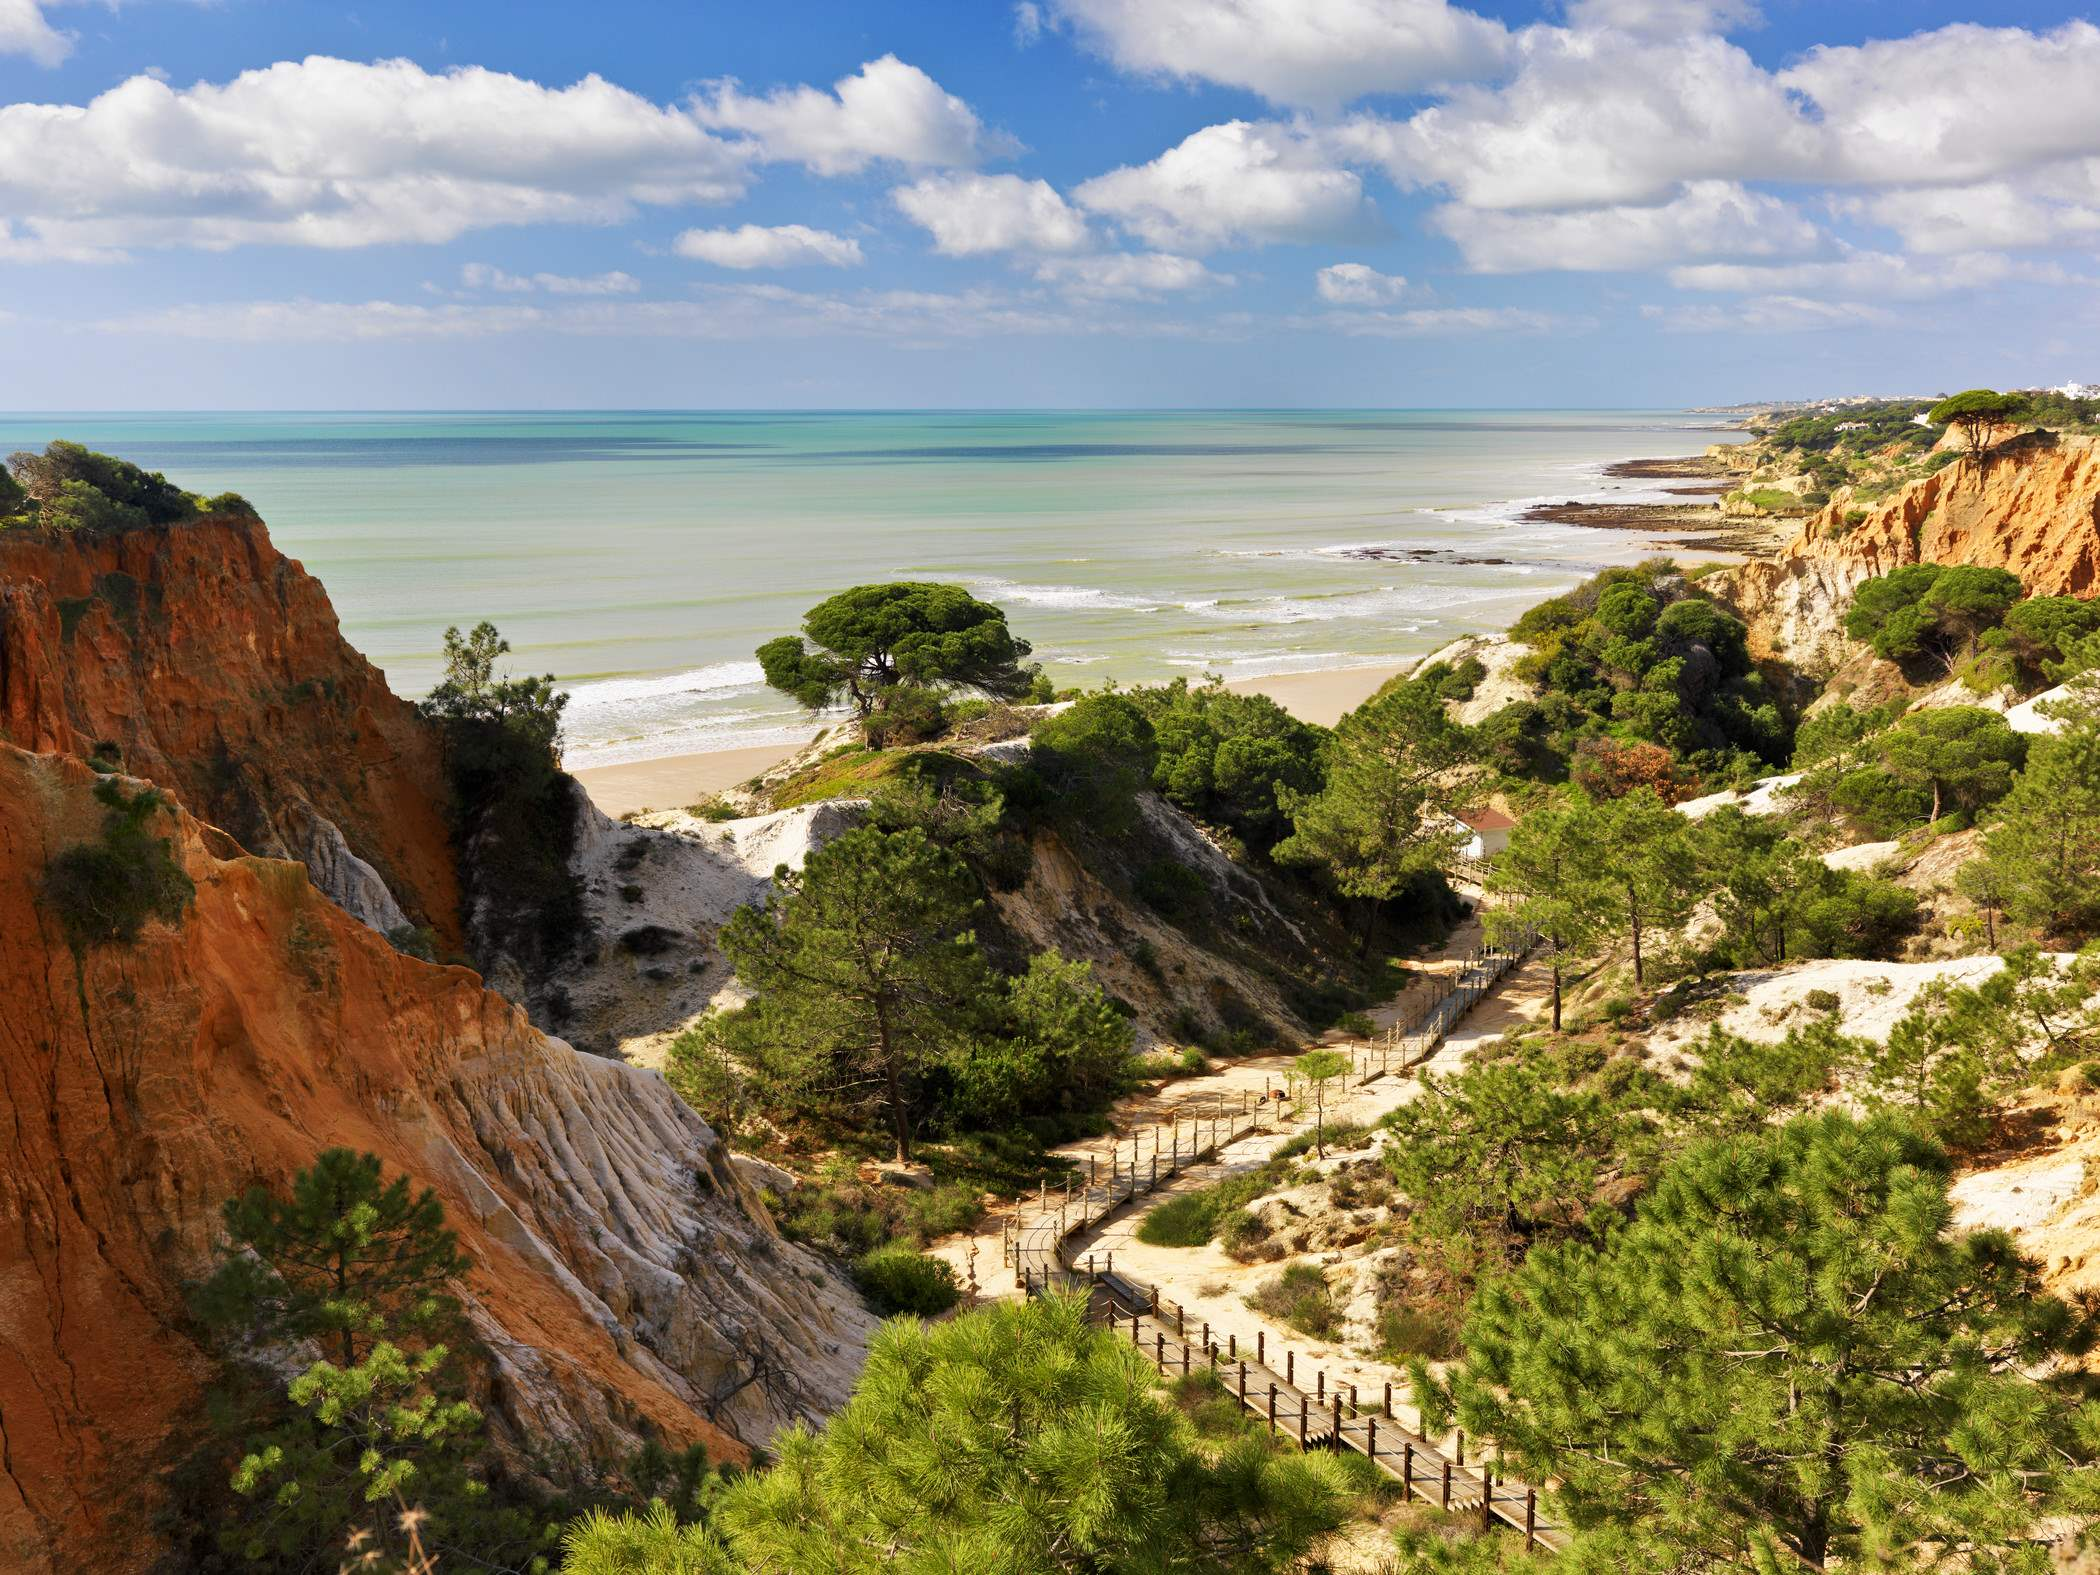 Pine Cliffs Gardens, One Bedroom Suite, S/C Basis, 1 bedroom apartment in Pine Cliffs Resort, Algarve Photo #57